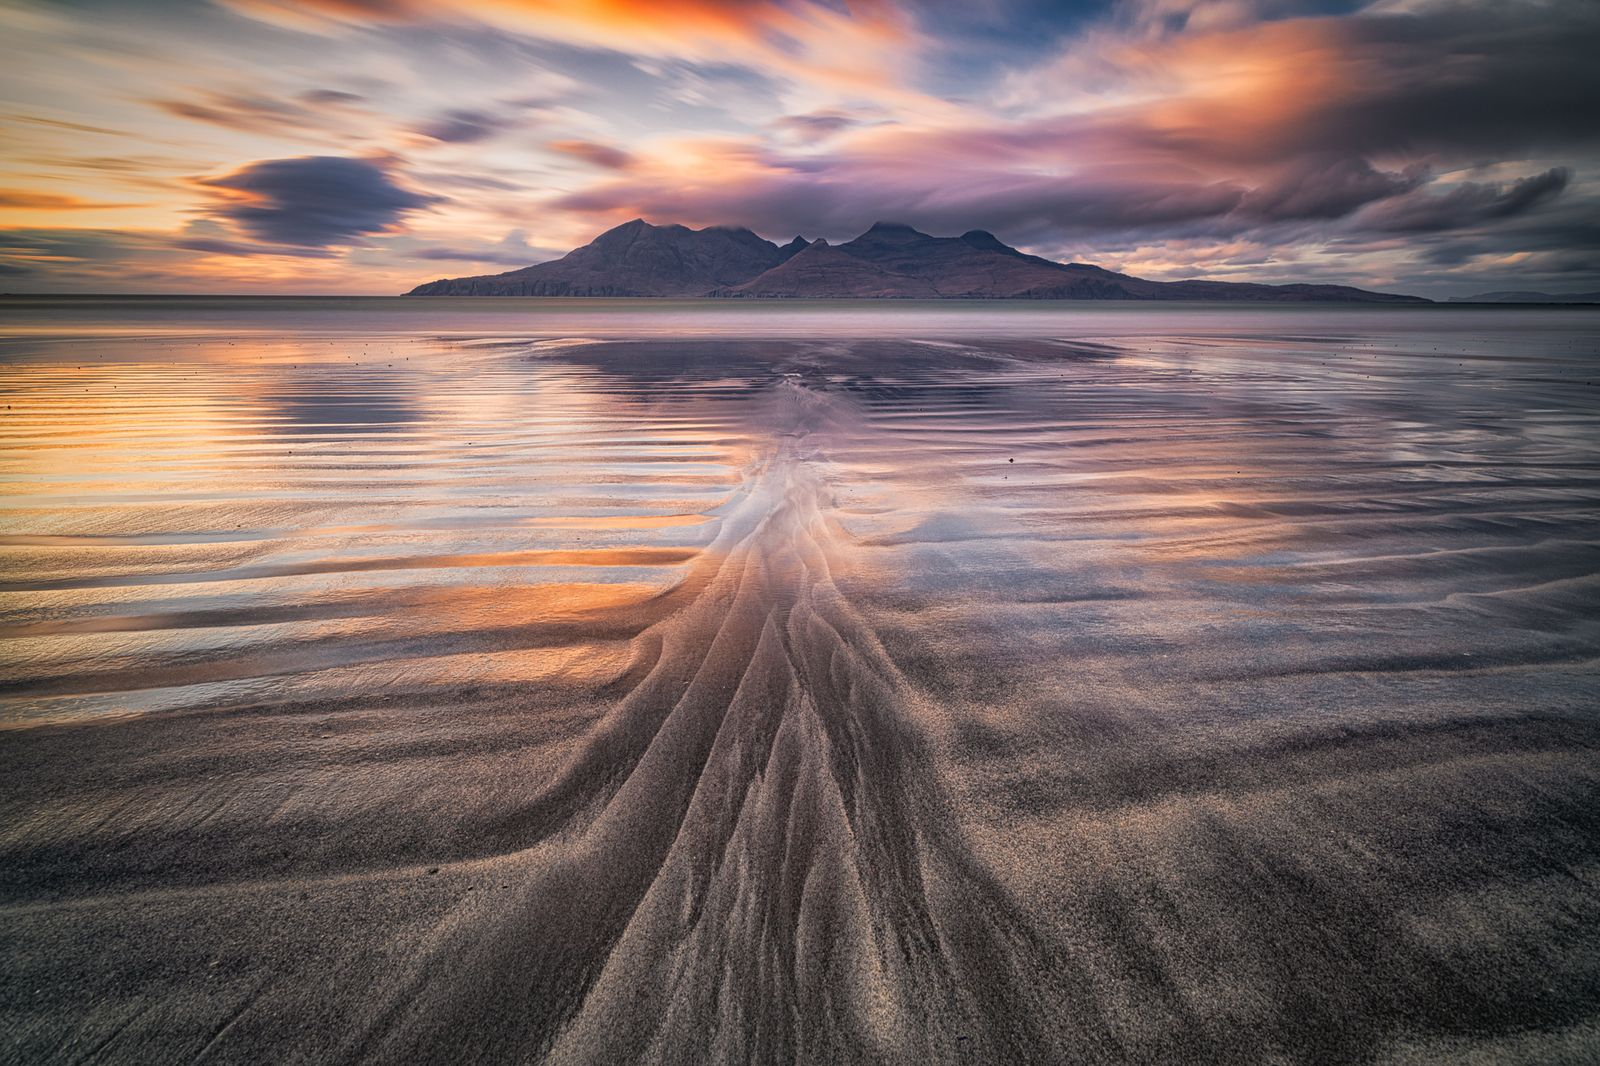 Nature TTL Photographer of the Year 2021 / Landscapes